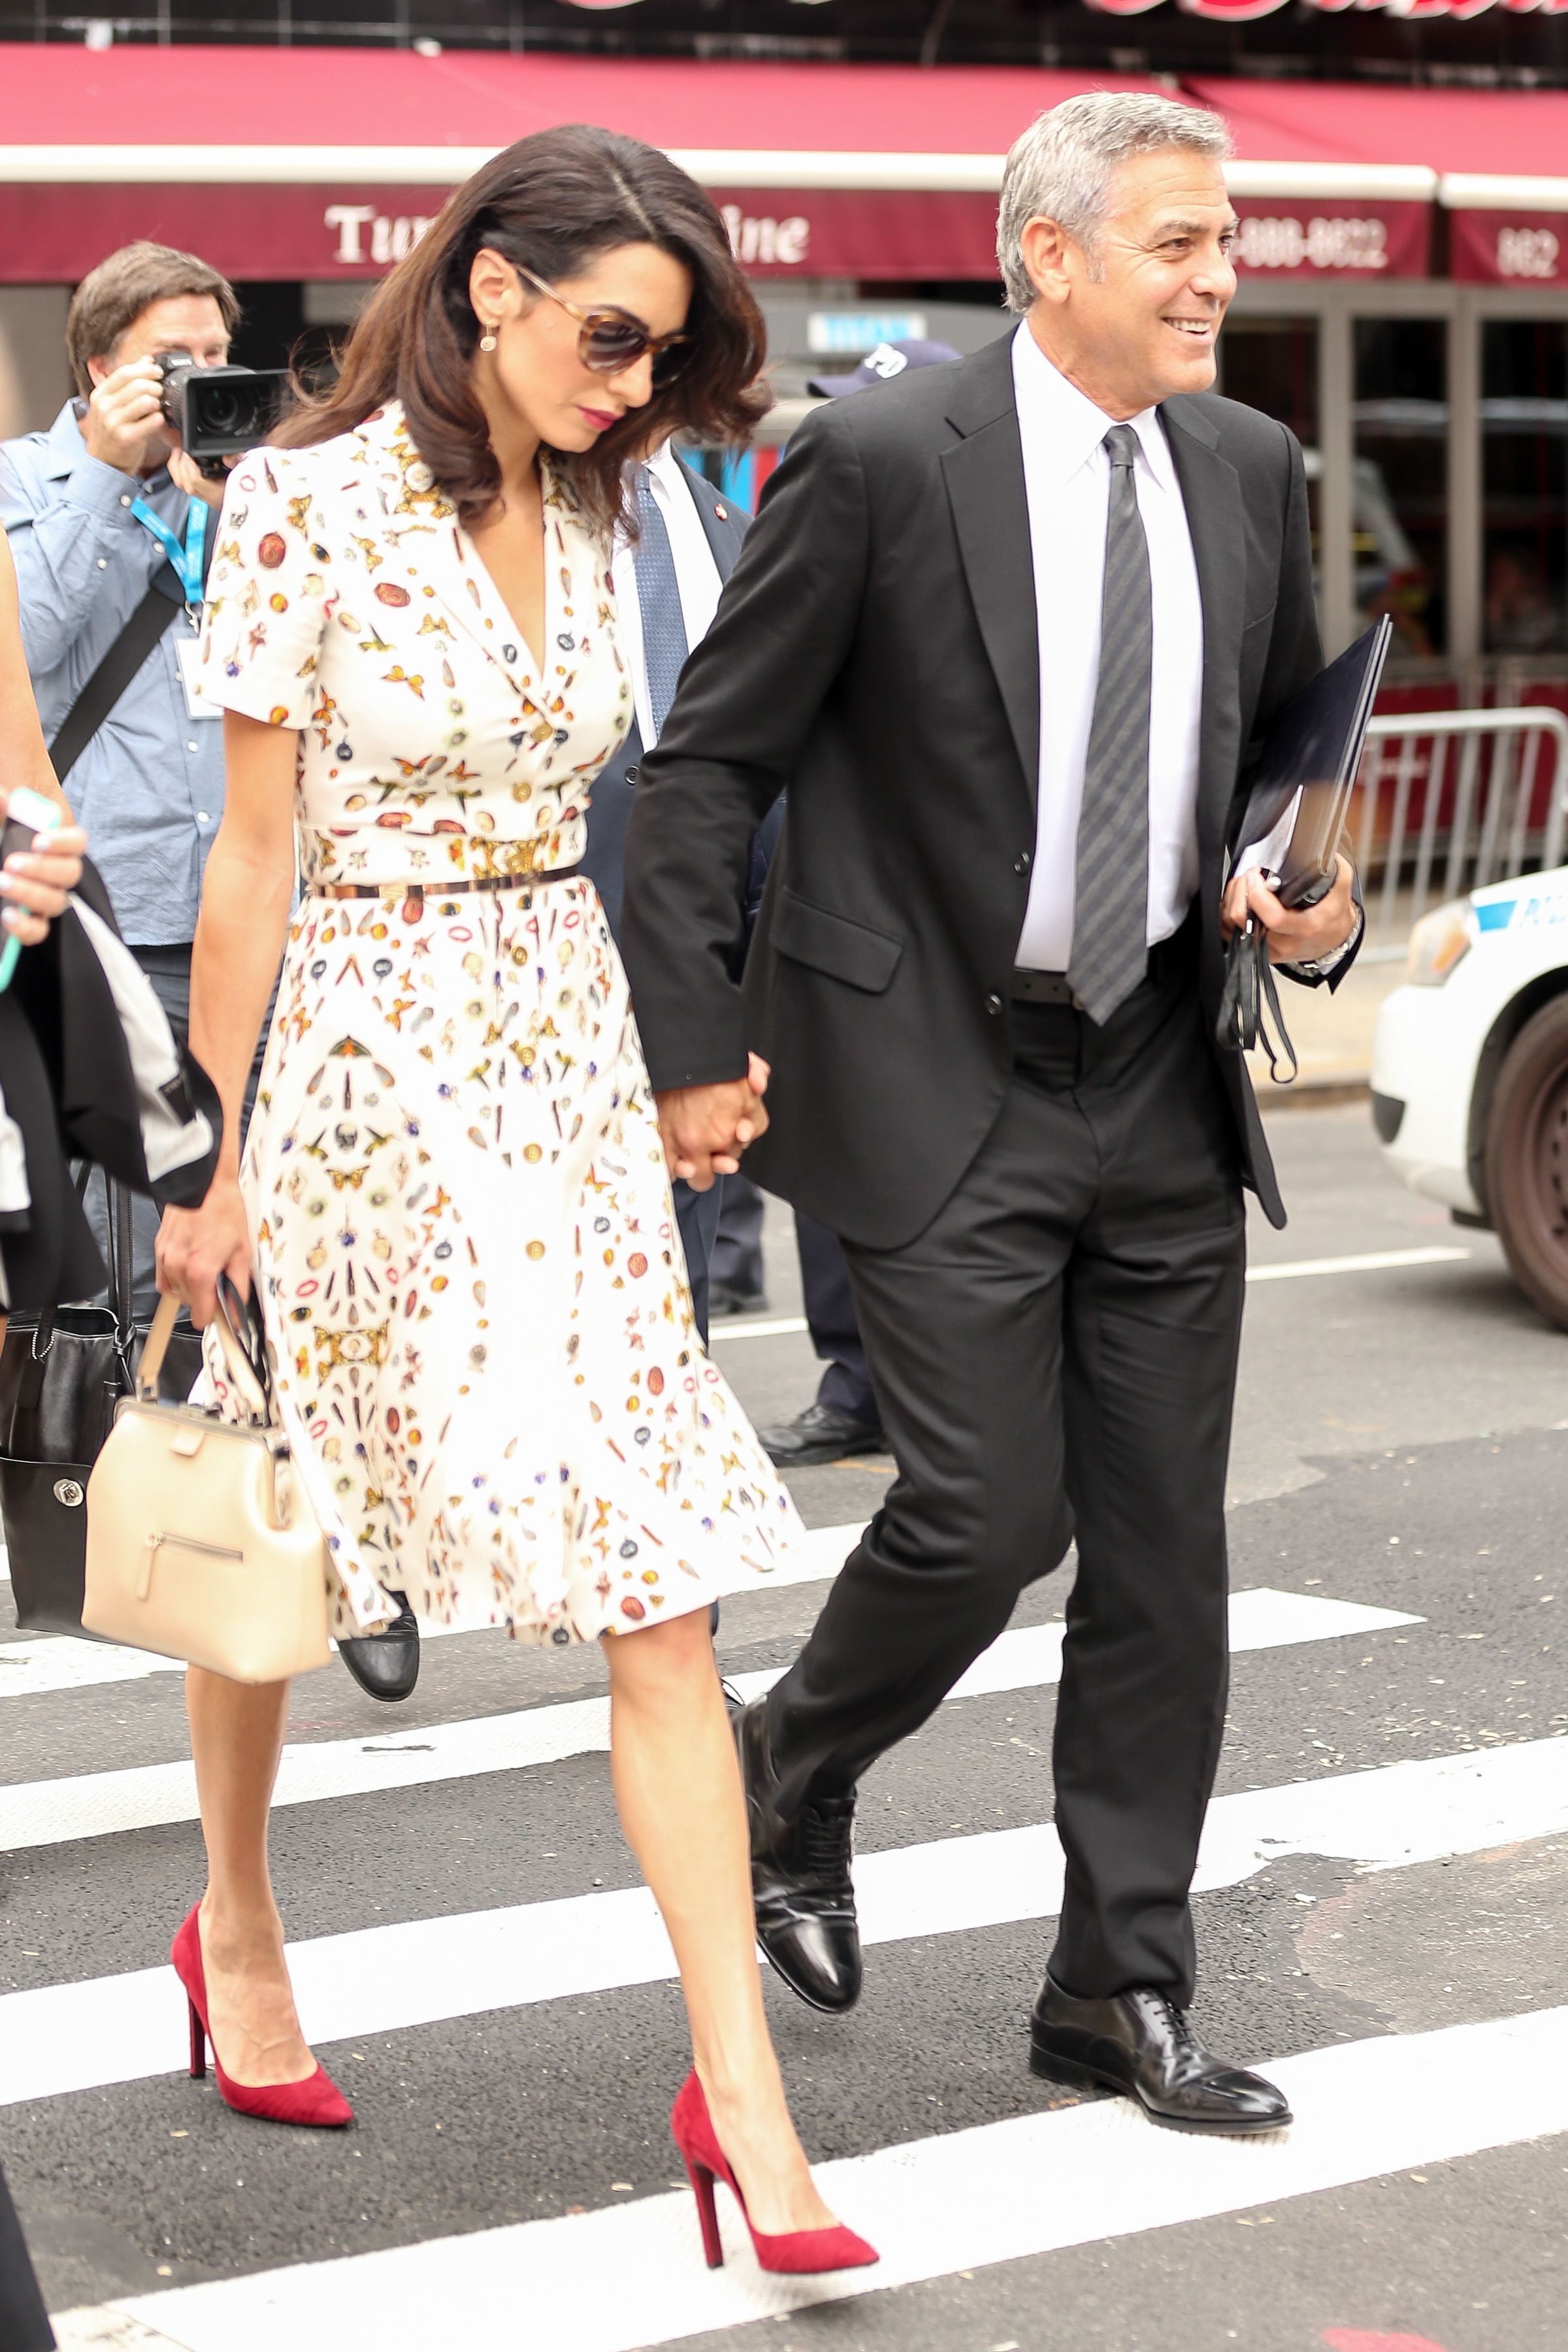 Amal Clooney Best Style Moments Amal Clooney Fashion Photos